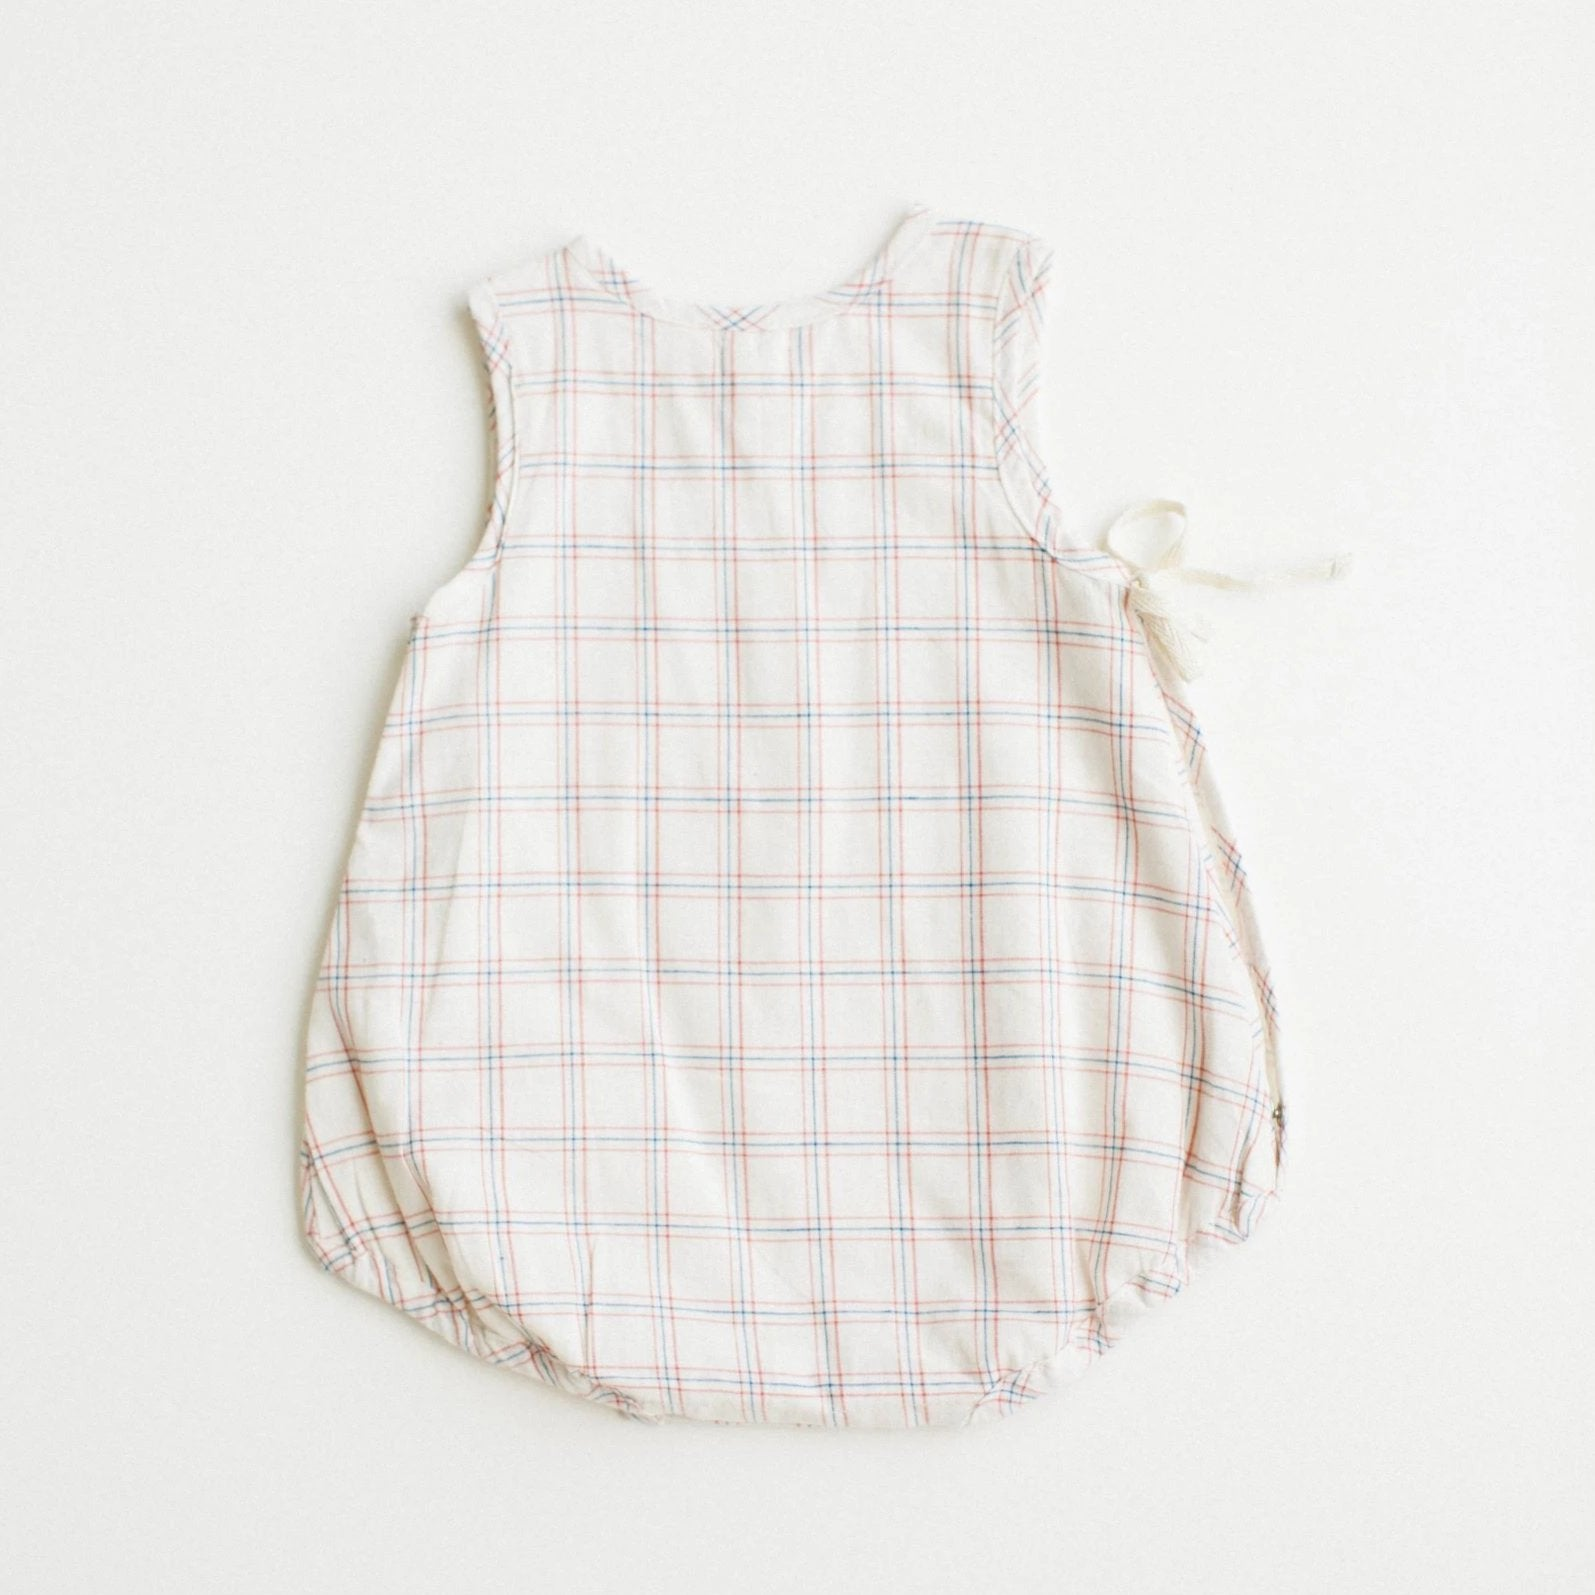 Buttercup Onesie - White Chex